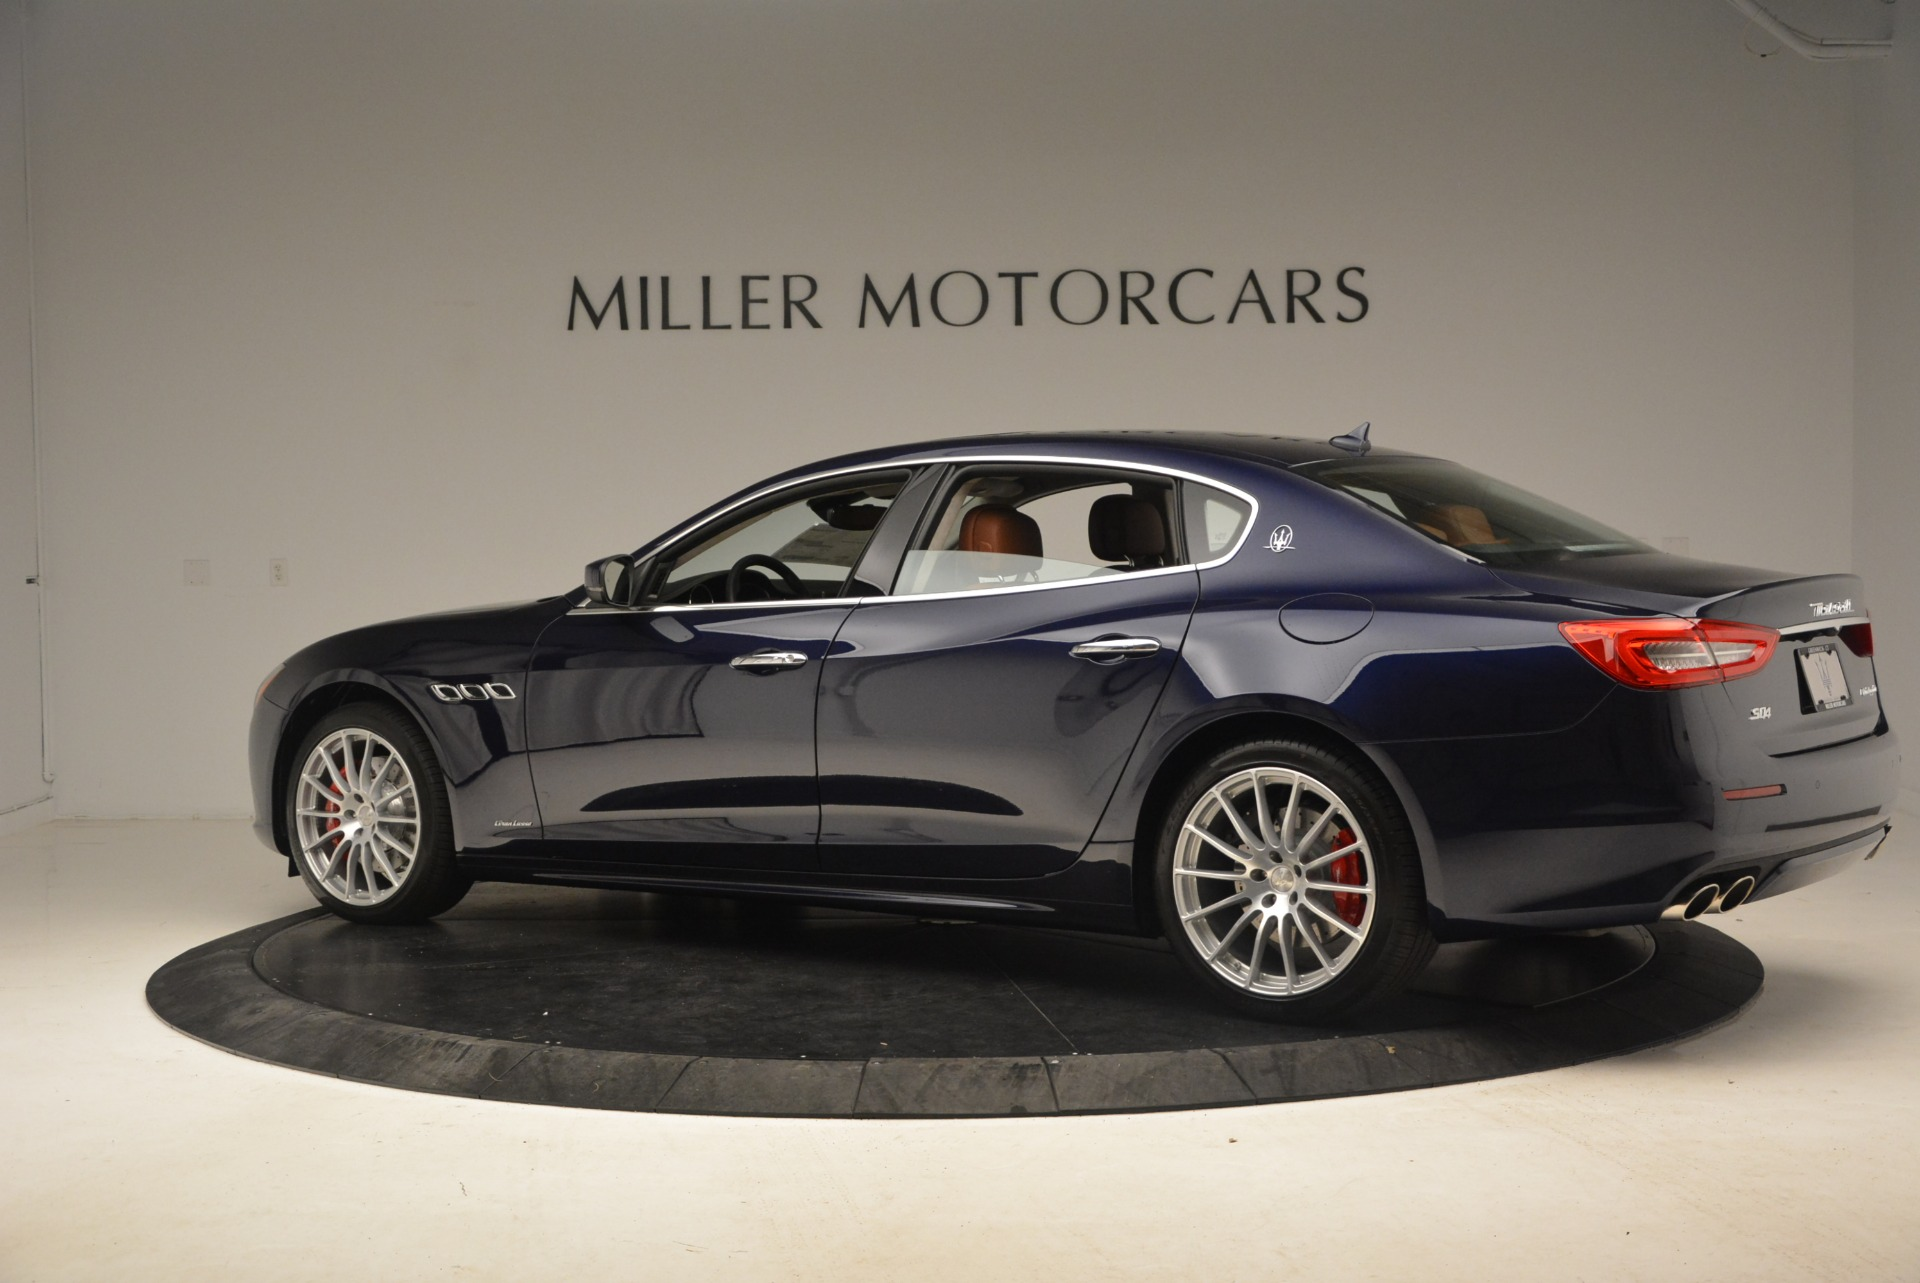 New 2019 Maserati Quattroporte S Q4 GranLusso For Sale In Greenwich, CT 2767_p4